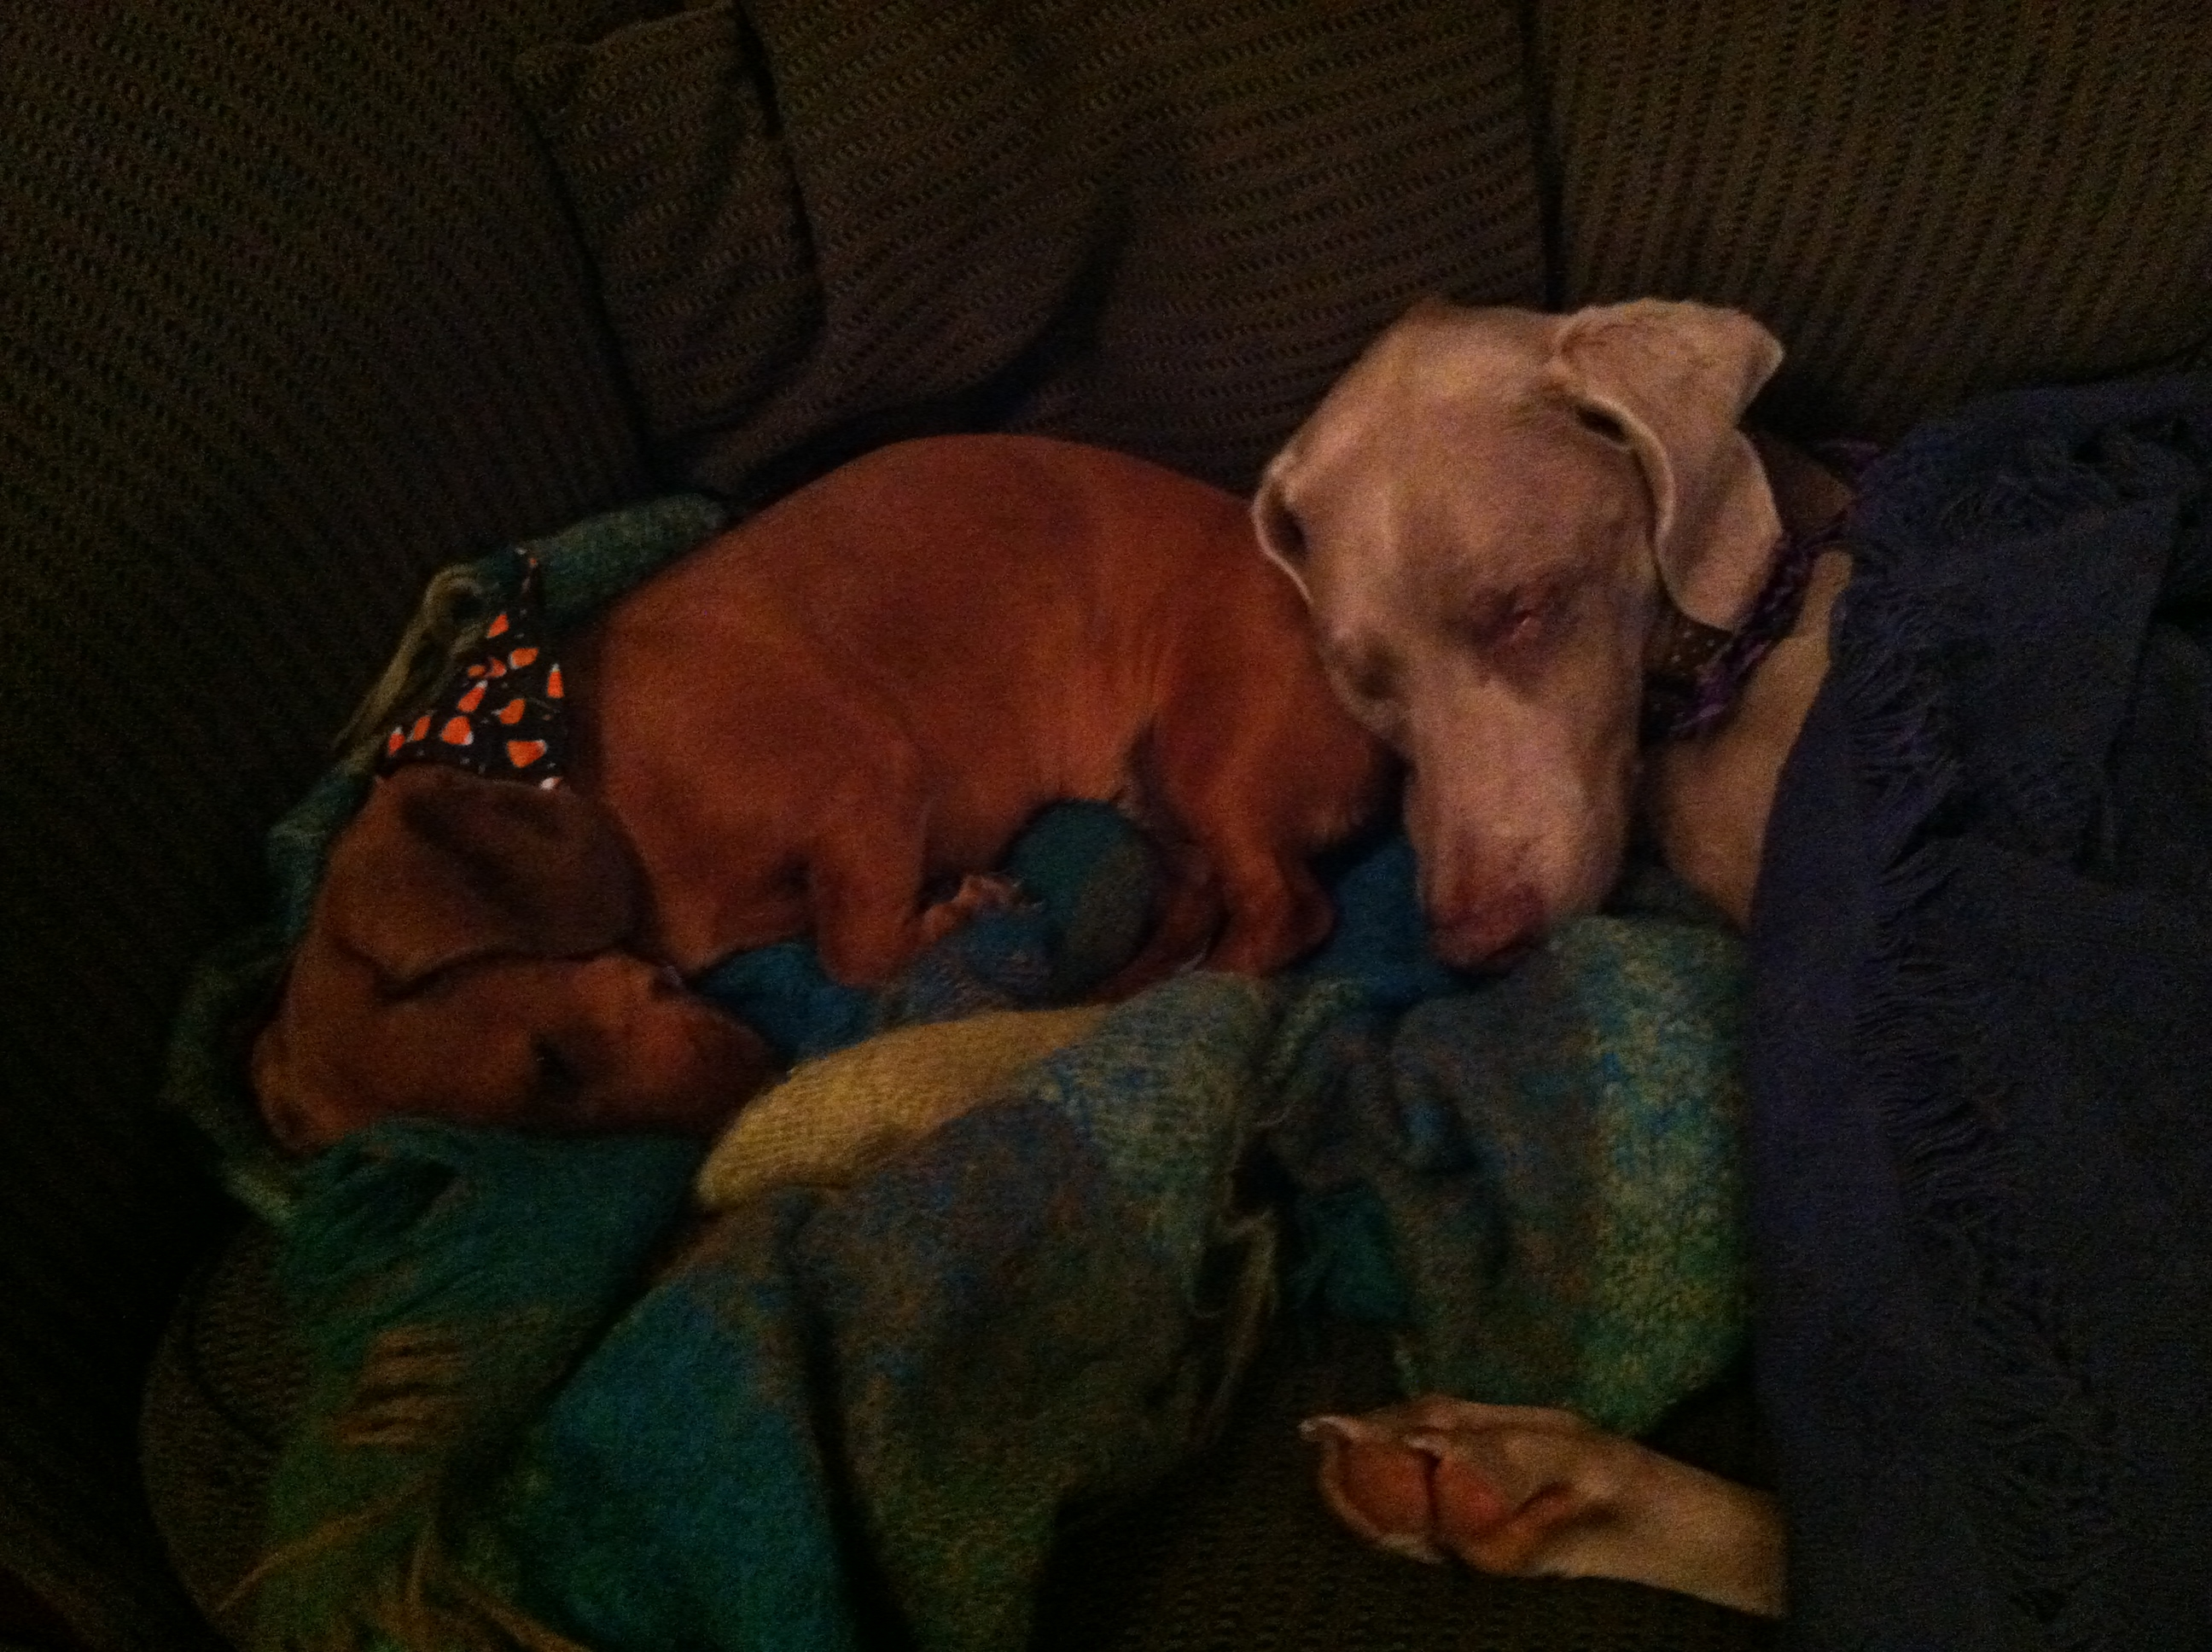 Sugarland is the min dachshund. Emma is the weimaraner, who is clearly enjoying the relaxed rules of hospice.